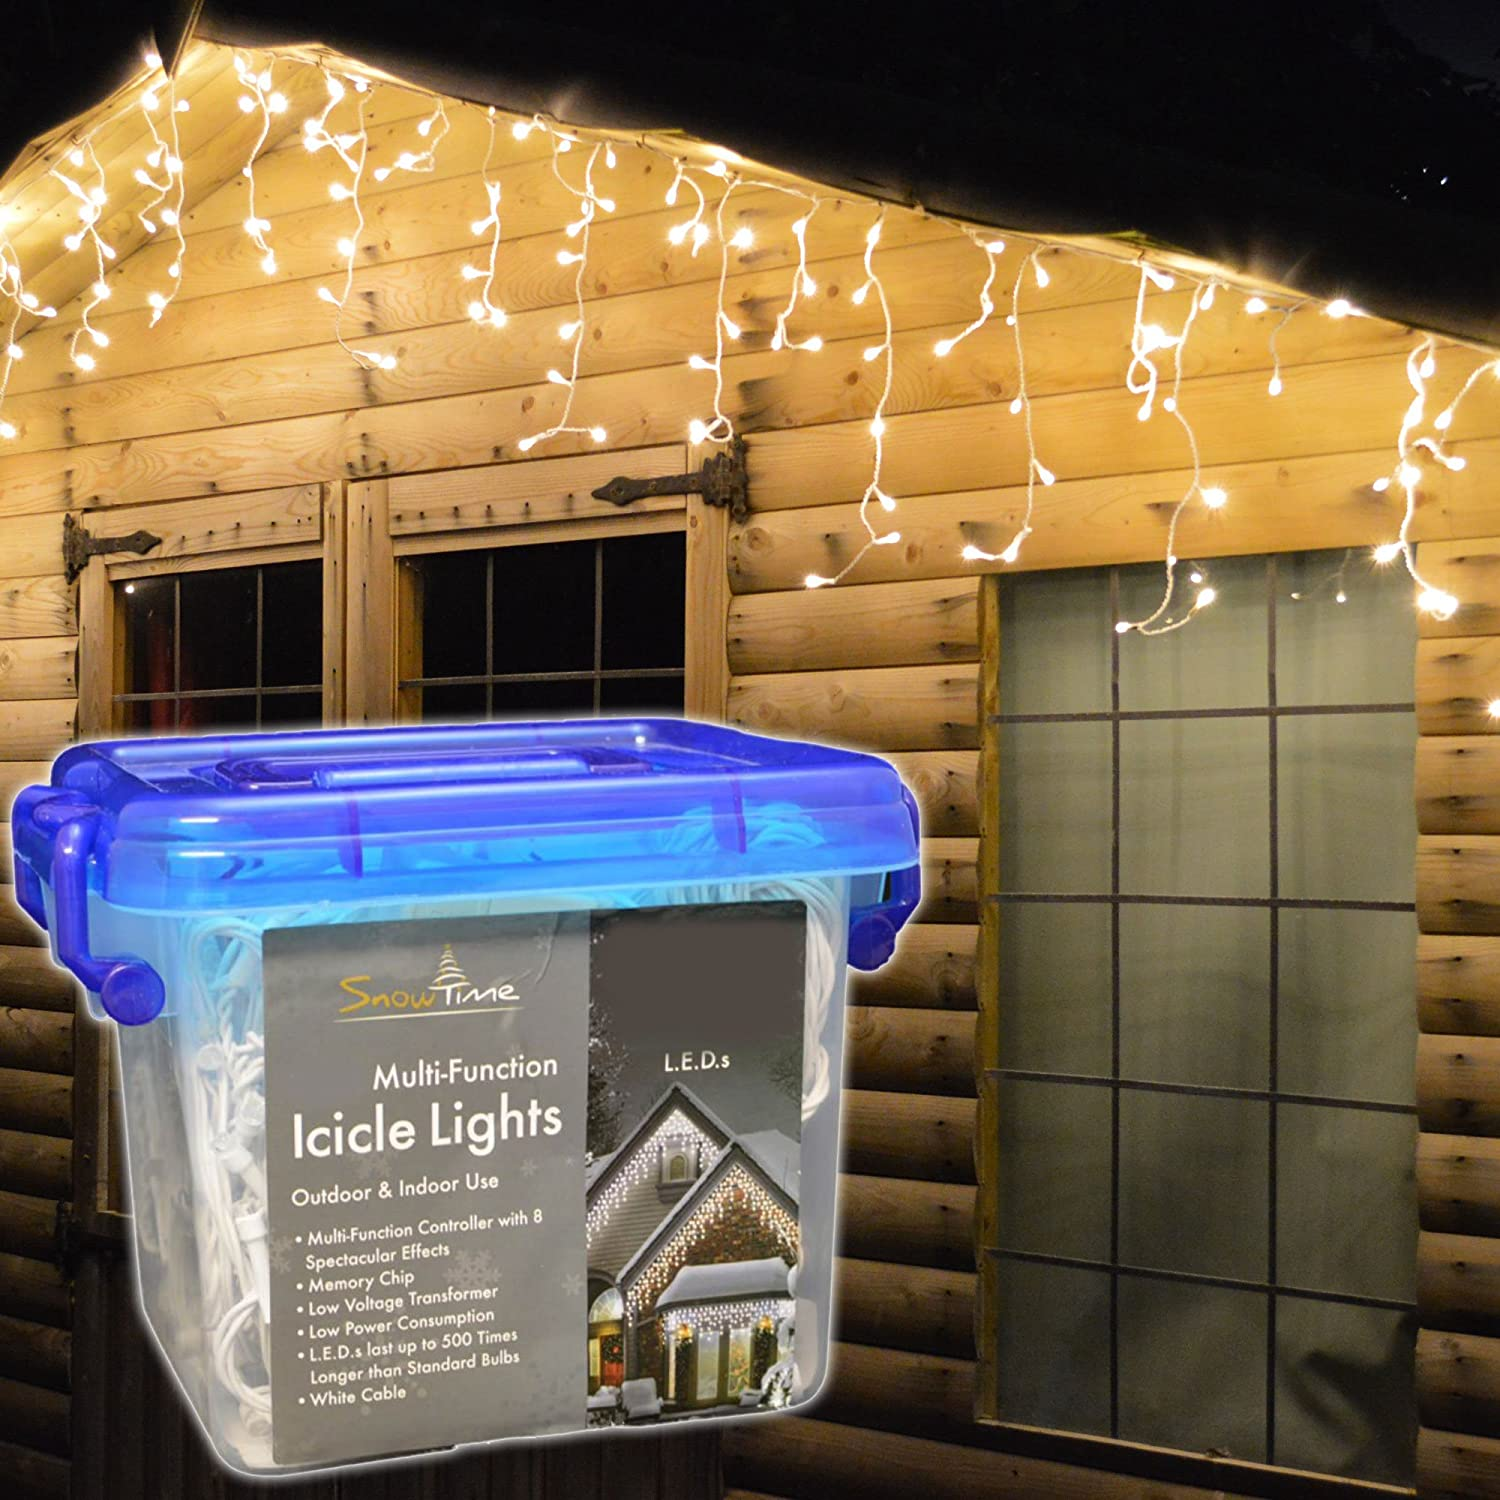 Snowtime 400 White LED Snowing Icicle Lights WHITE: Amazon.co.uk ...